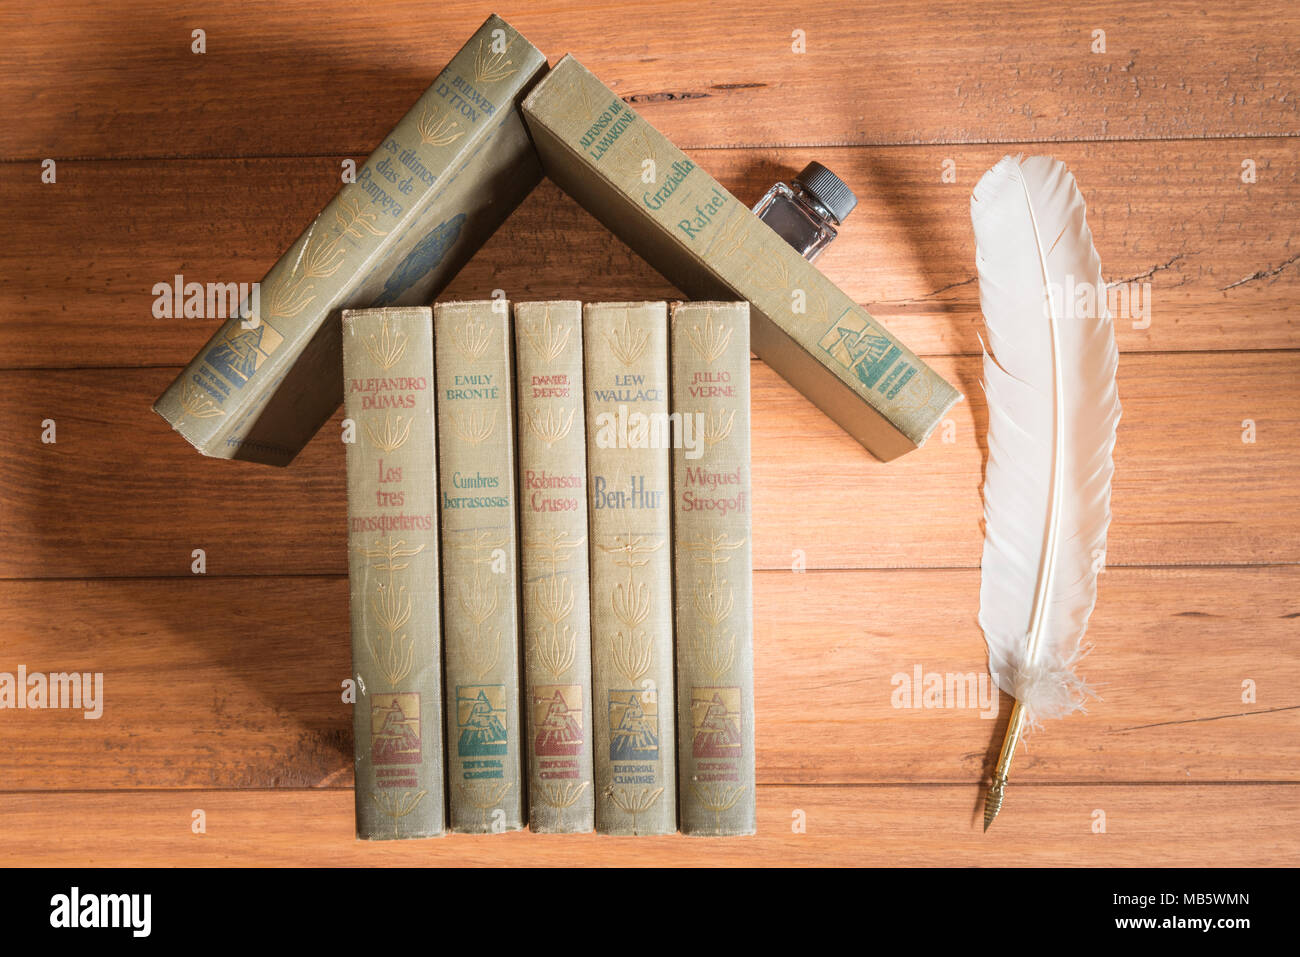 Stack of old books forming the figure of a house, with an inkwell like a fireplace and a feather like a tree, all on some wooden boards. - Stock Image